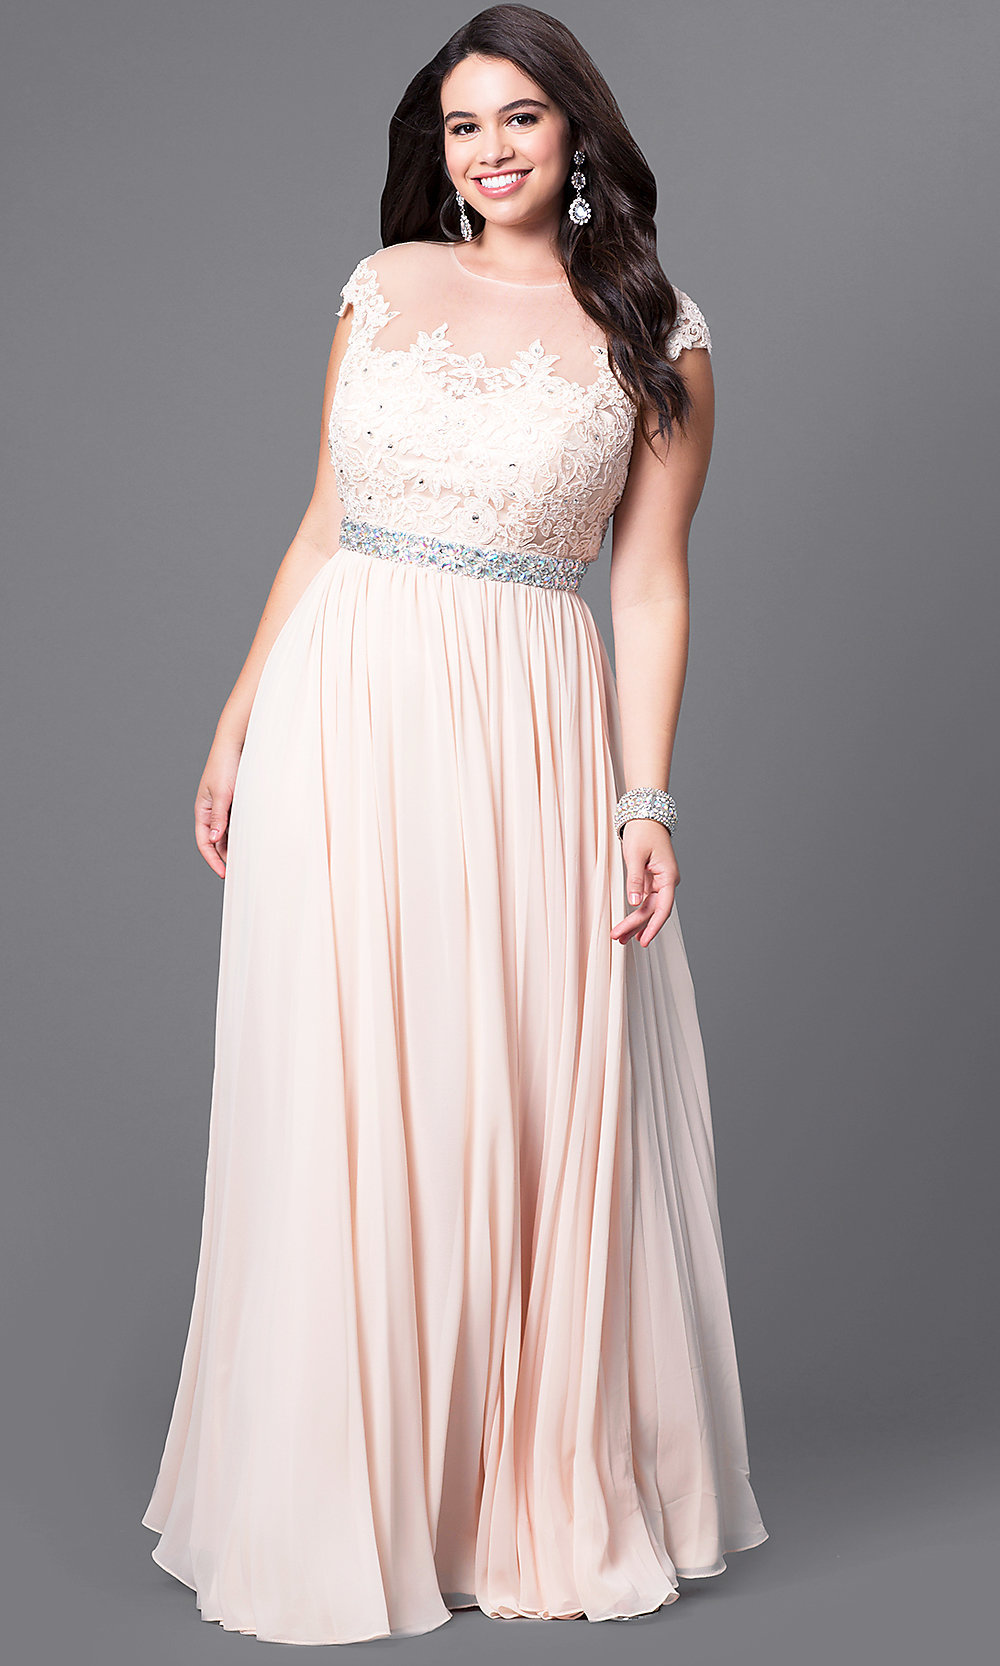 Plus-Size Ball Gowns, Formal Plus Gowns - PromGirl